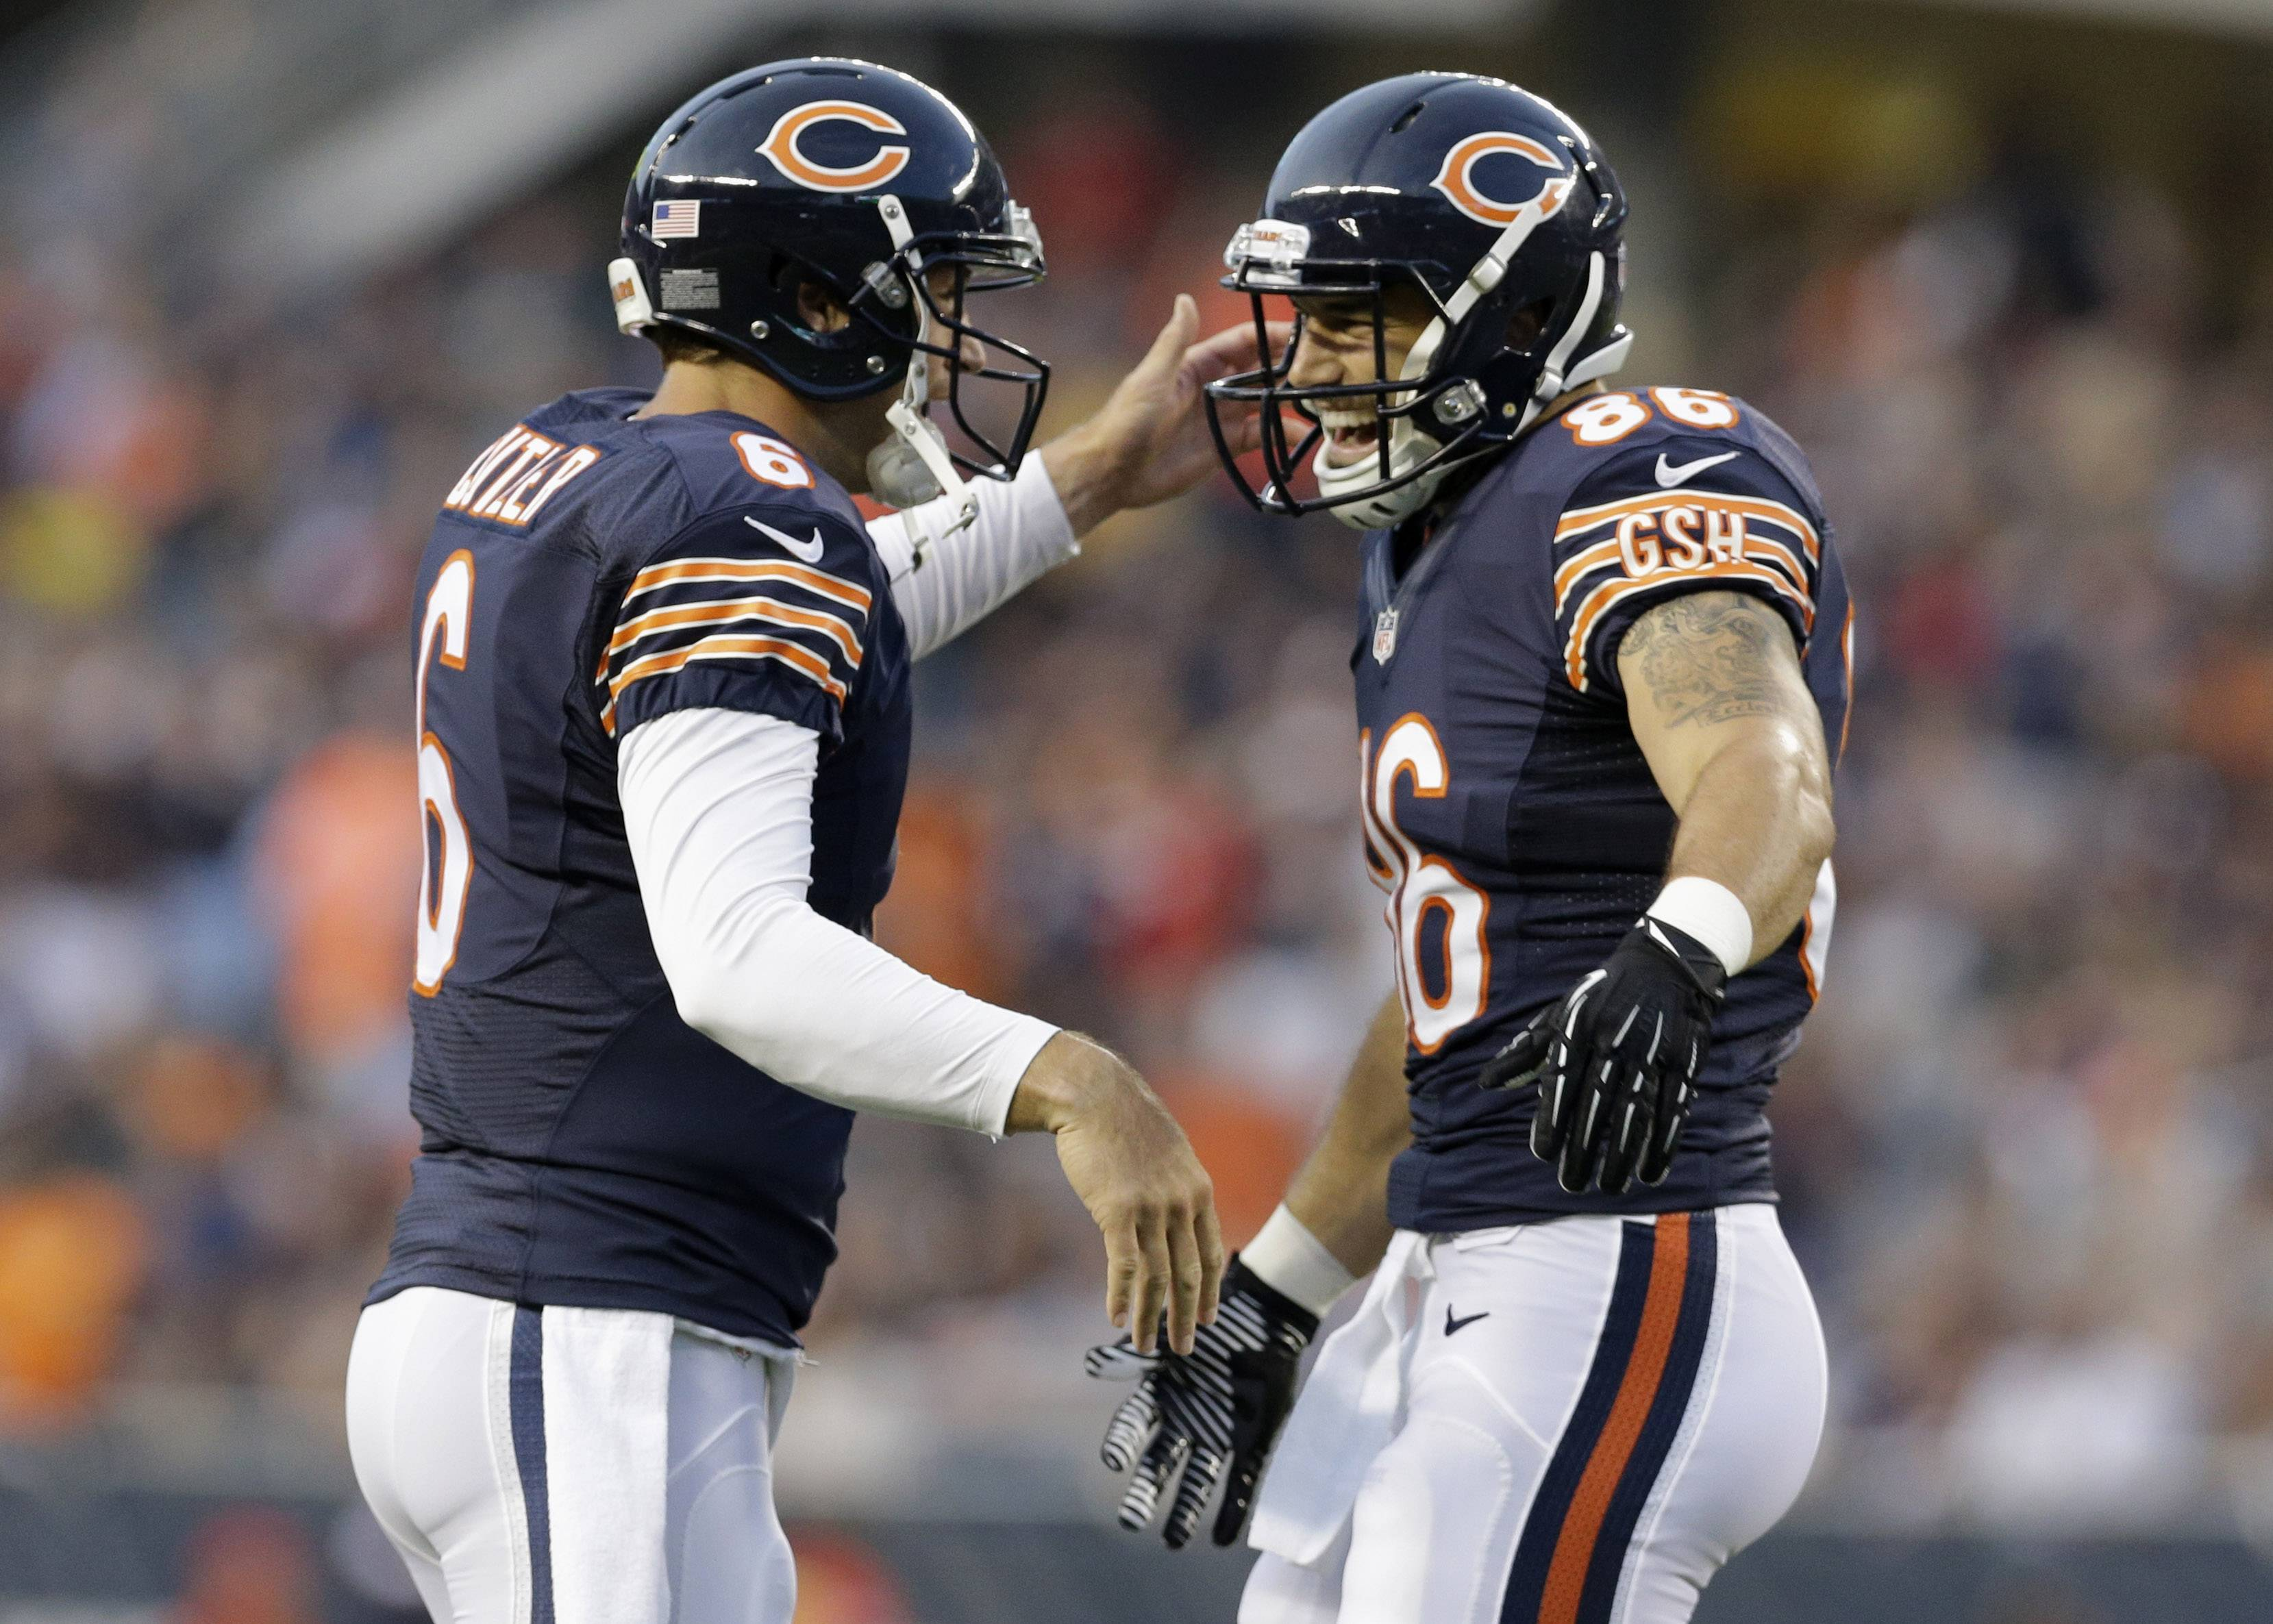 Bears quarterback Jay Cutler, left, celebrates a touchdown with tight end Zach Miller in a preseason game against Philadelphia on Aug. 8 in Chicago. Miller was injured during Thursday night's preseason game against Jacksonville and is out for the year.